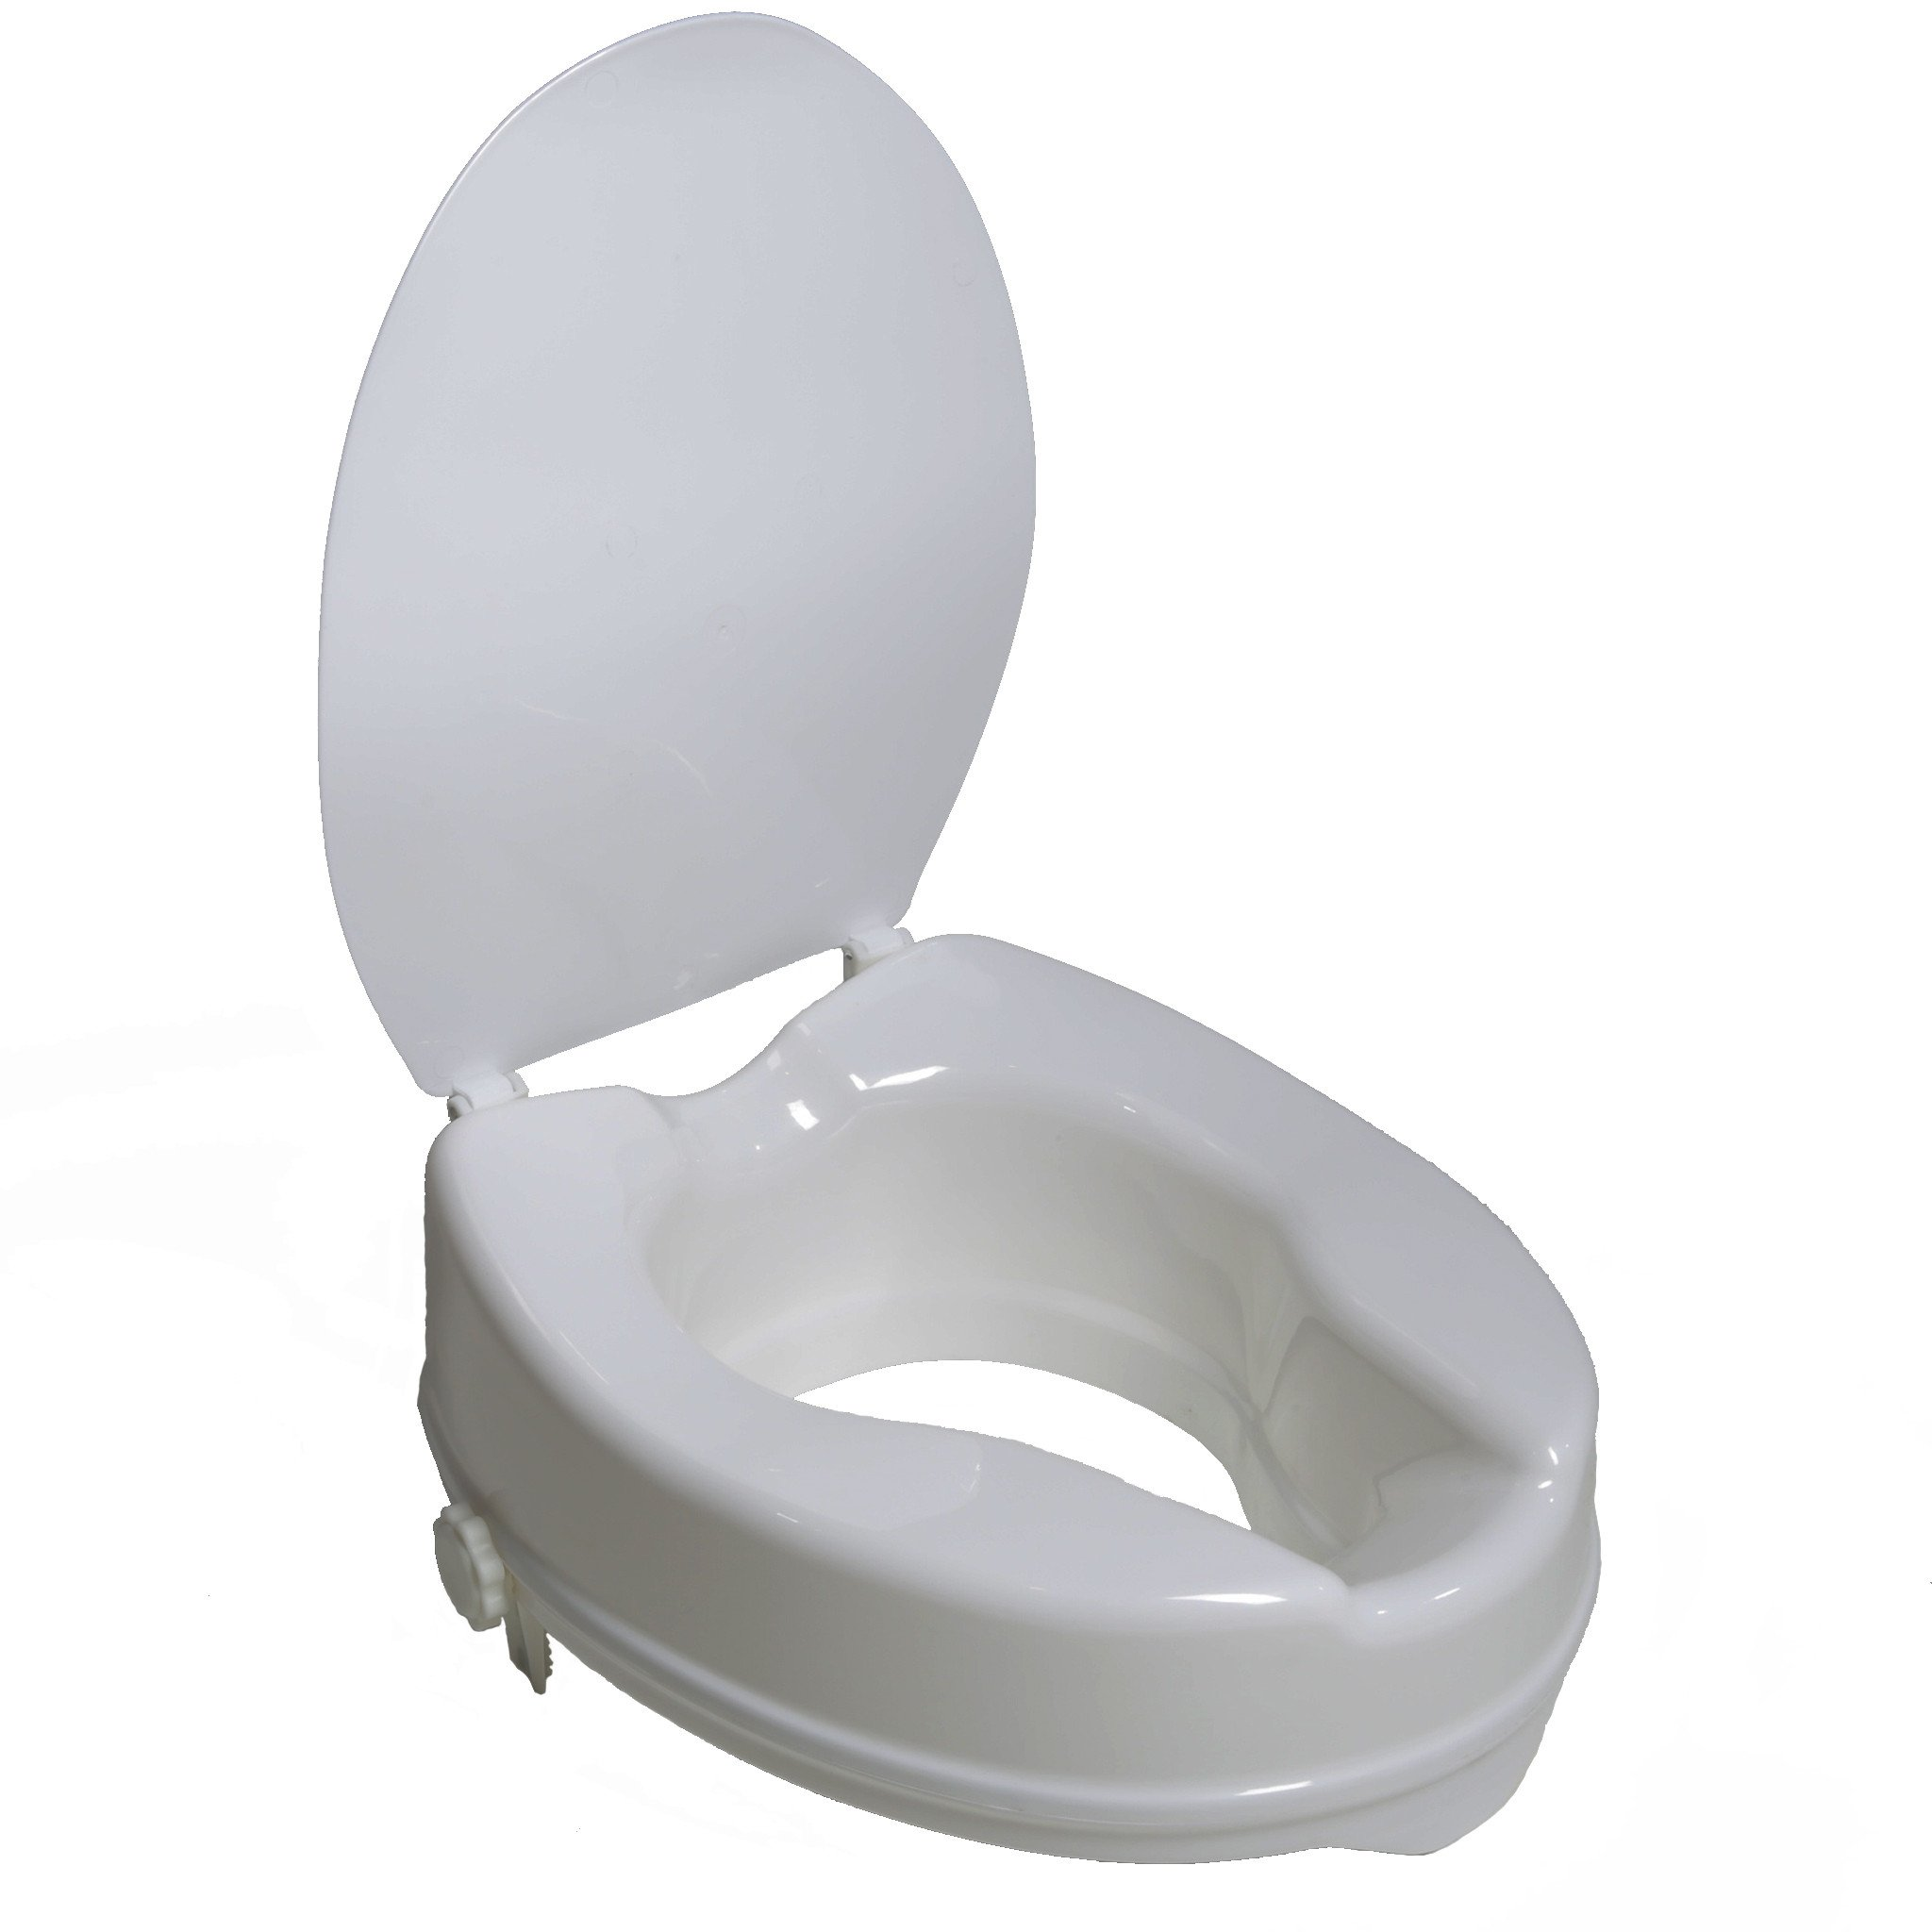 Lowes Toilet Seats | Cushioned Toilet Seats | Toilet Seats Lowes